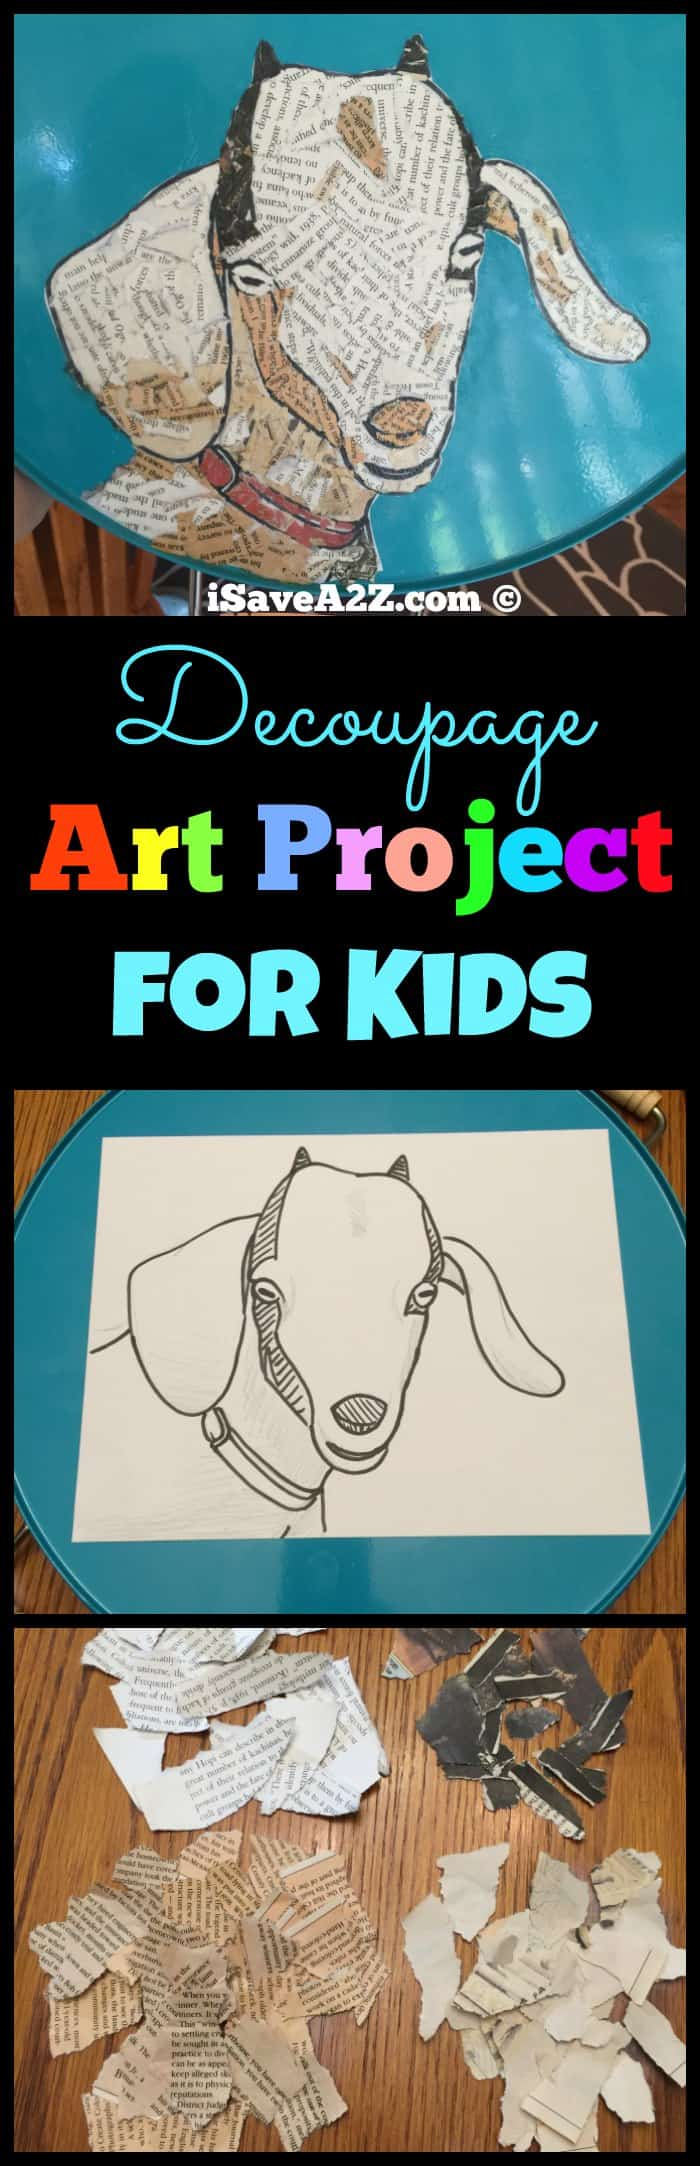 Decoupage Art Project for Kids